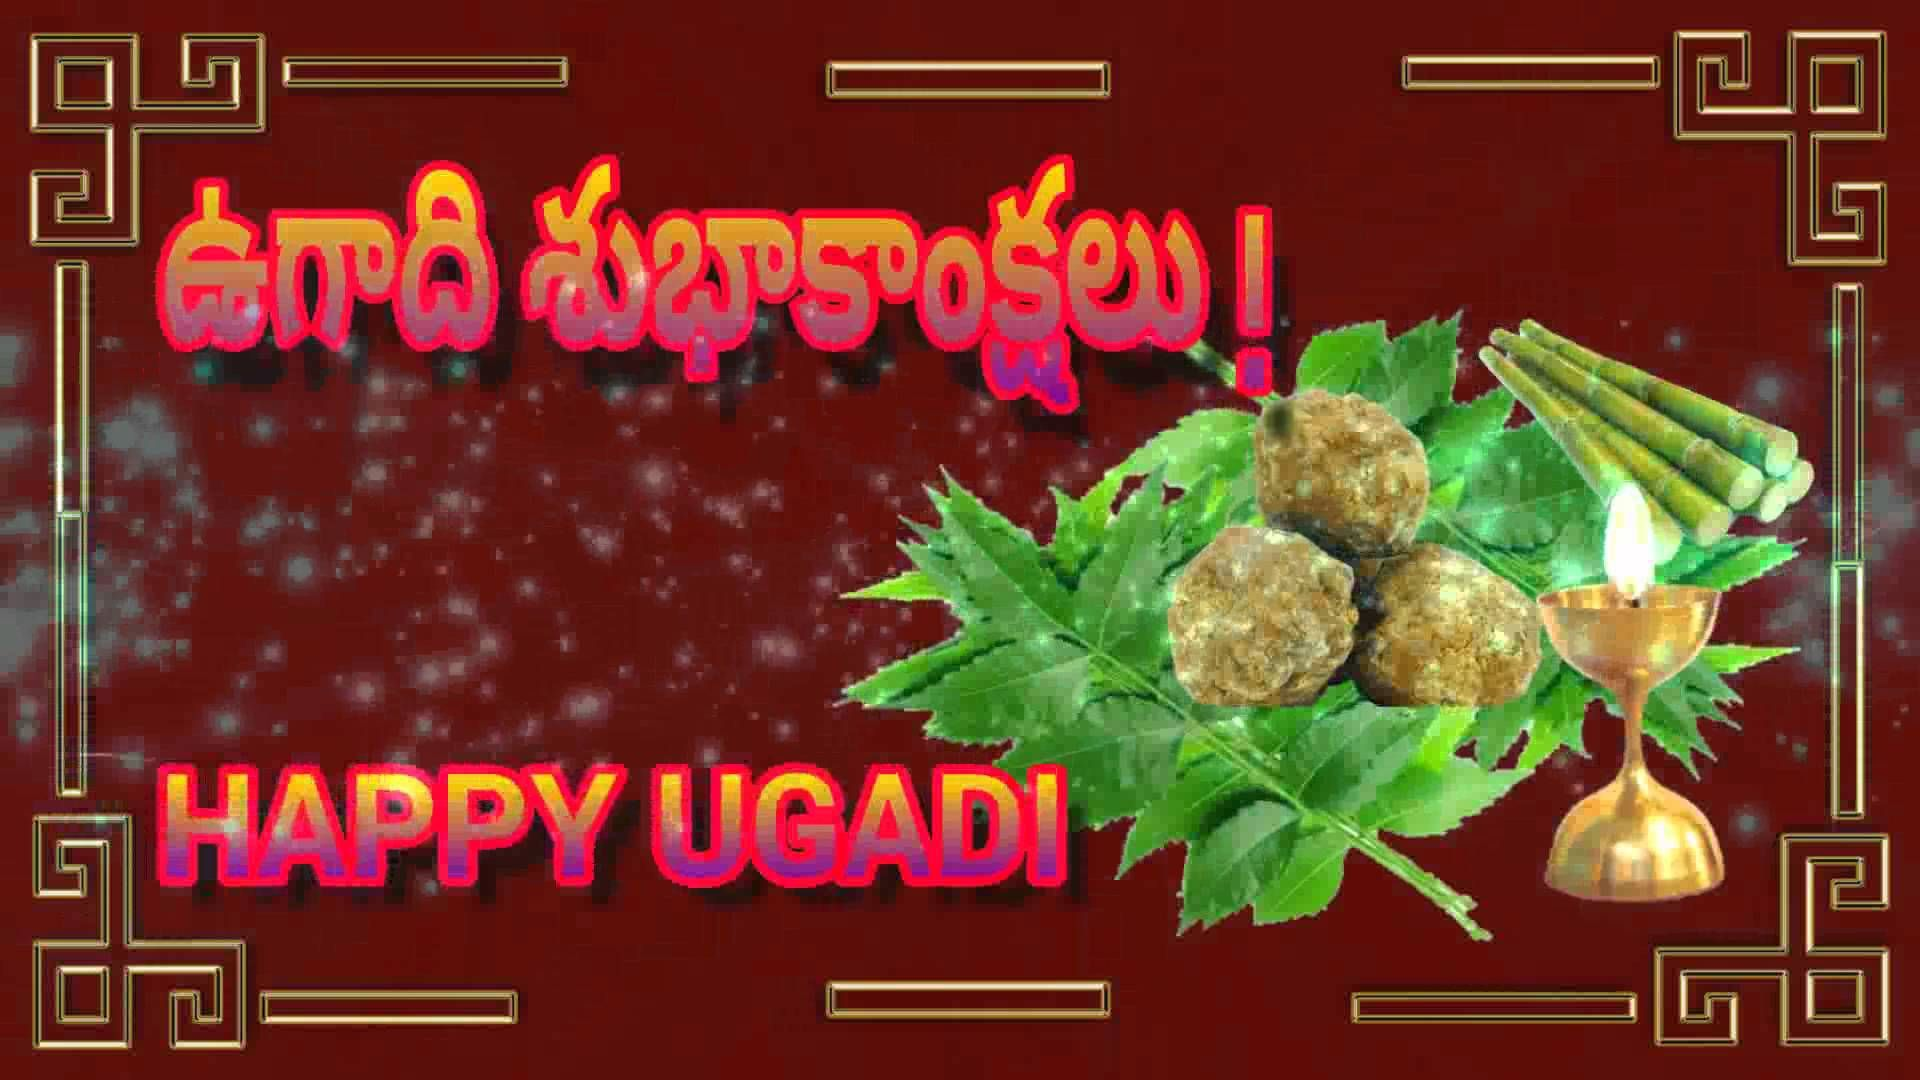 Happy ugadi happy ugadi greetings in telugu ugadi 2016 ugadi happy ugadi happy ugadi greetings in telugu ugadi ugadi wishes m4hsunfo